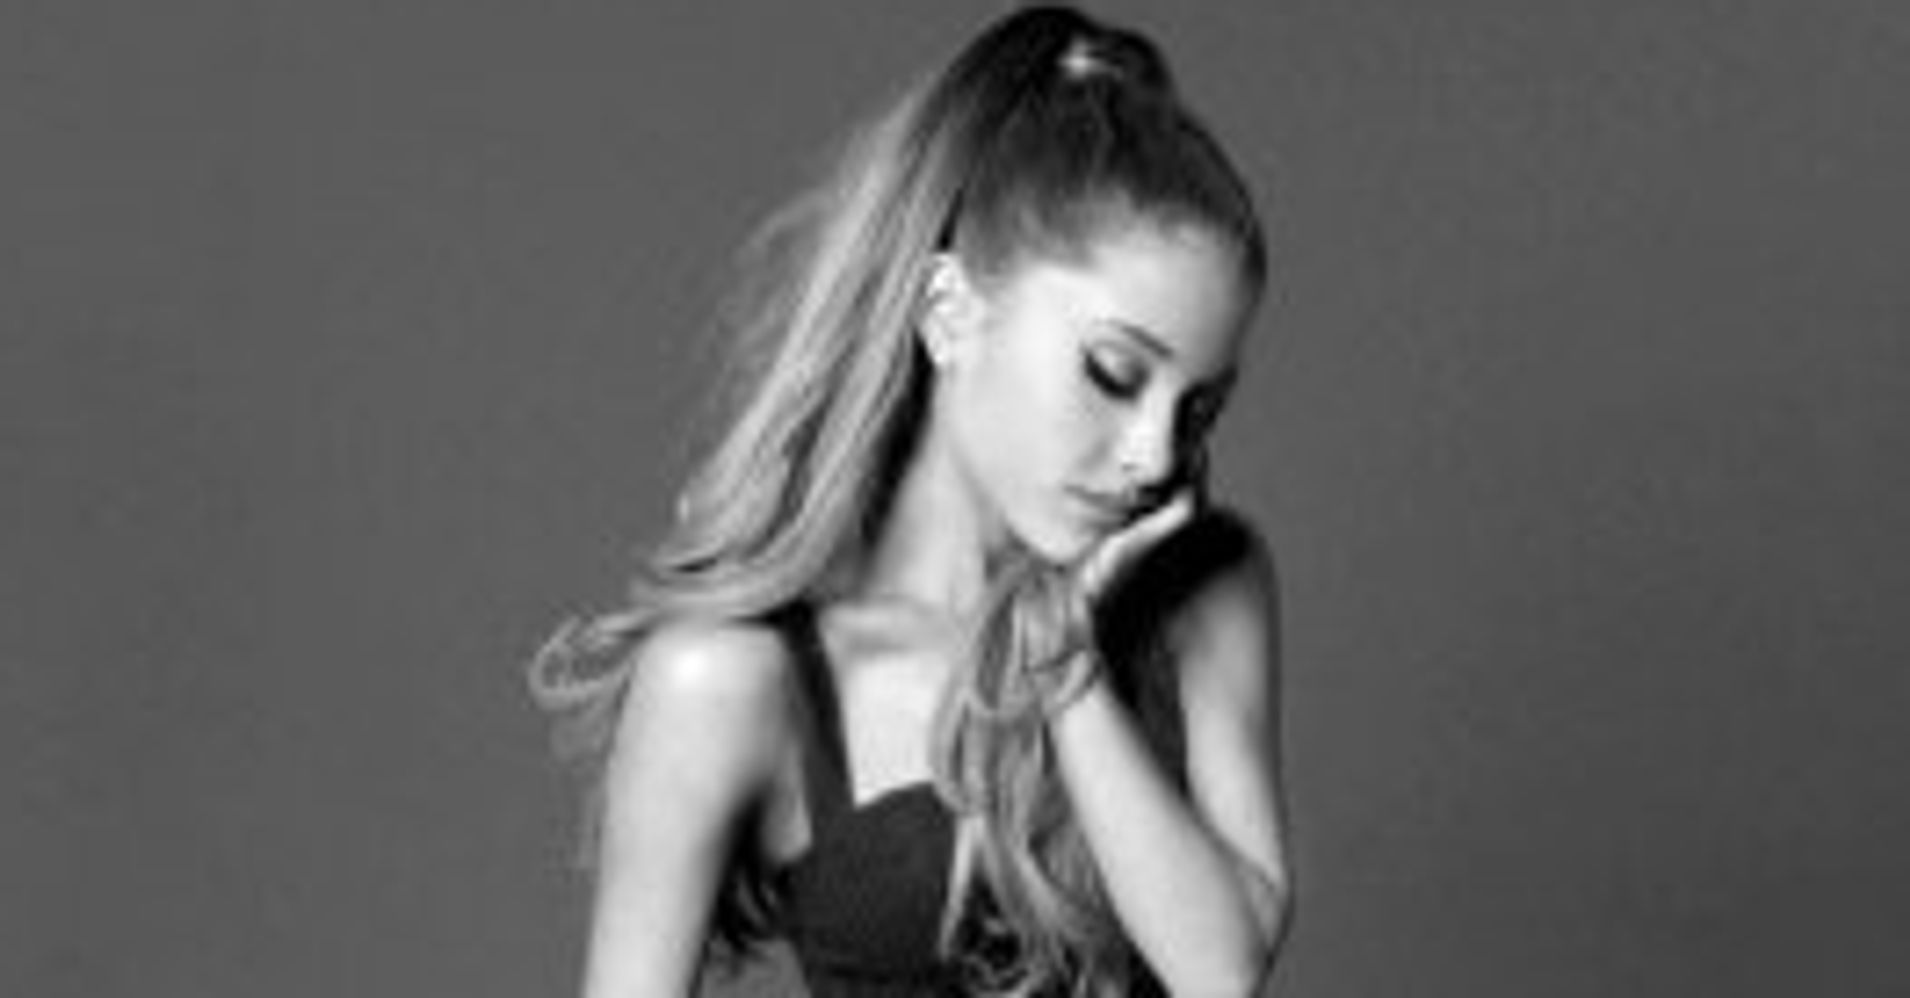 Ariana Grande's 2014 Album Cover Is Your New Favorite ...